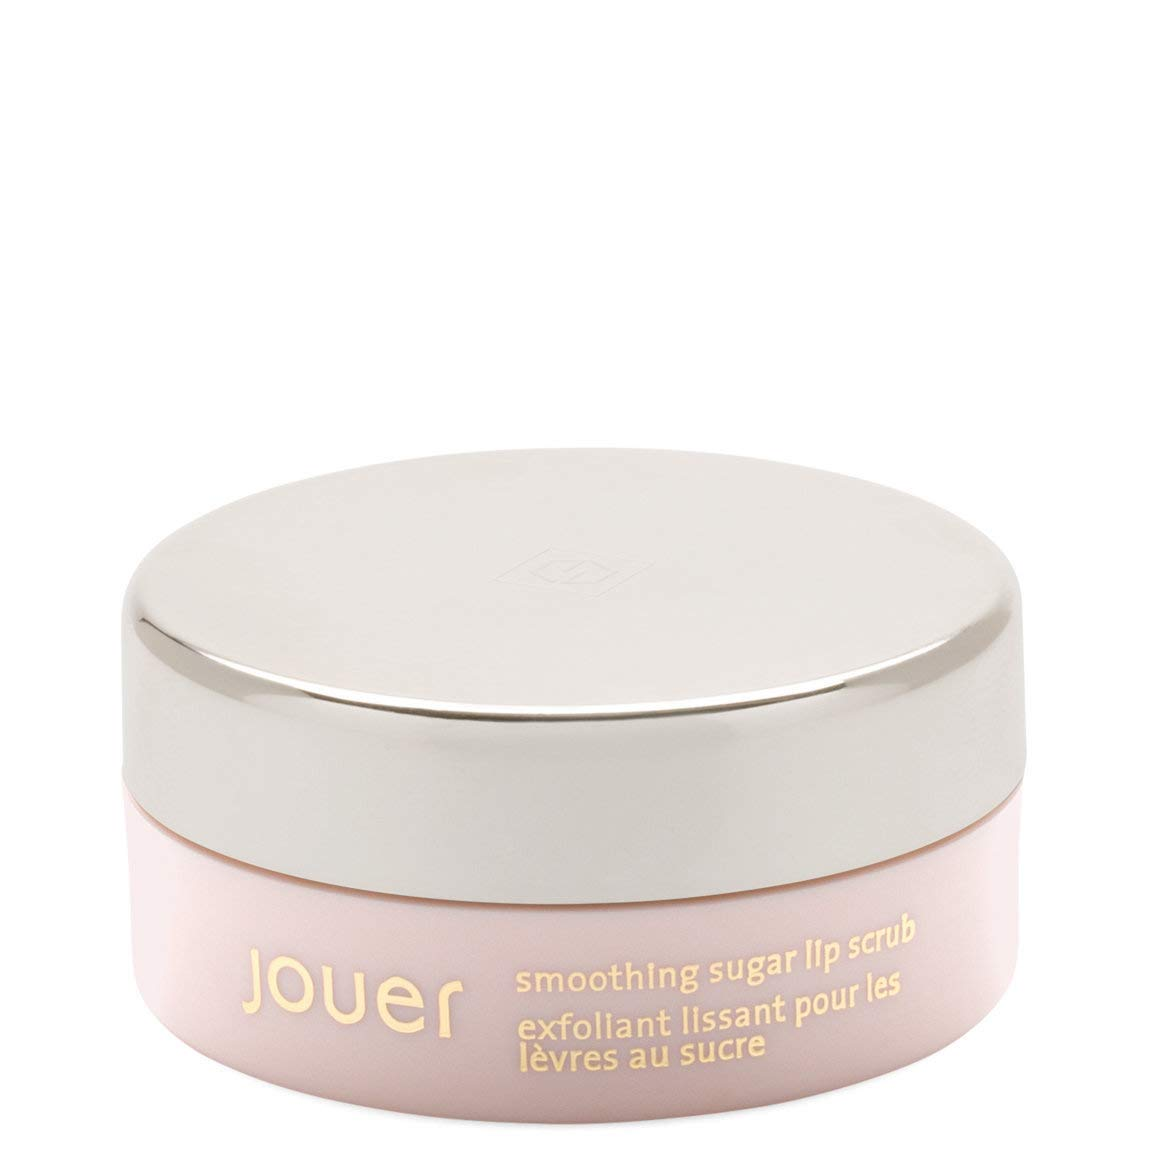 Jouer Smoothing Sugar Lip Scrub - 0.77 Oz by J.O.R Cosmetics